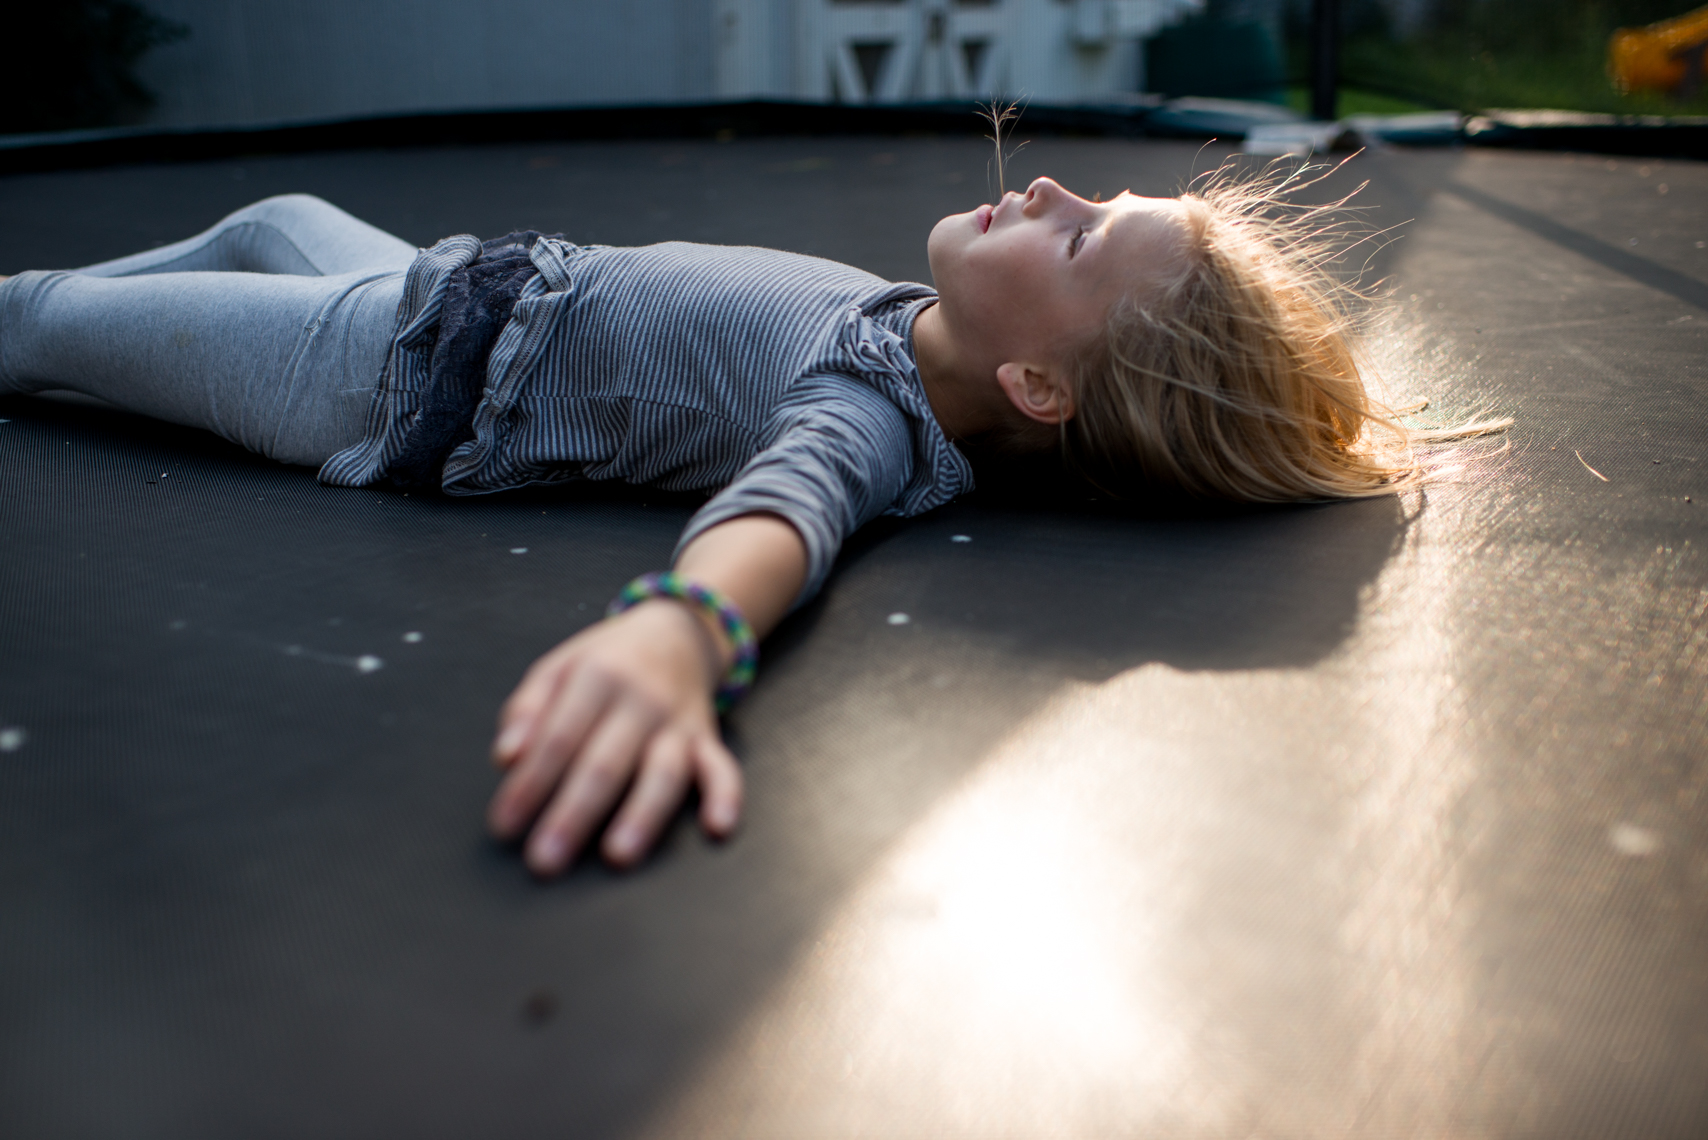 Girl on a trampoline at sunset. Documentary, Editorial, Photojournalist, New Orleans, Nashville, Atlanta, Texas, Austin, Chicago, Washington, D.C., DC, Photographer, woman, owned, business, women in photography